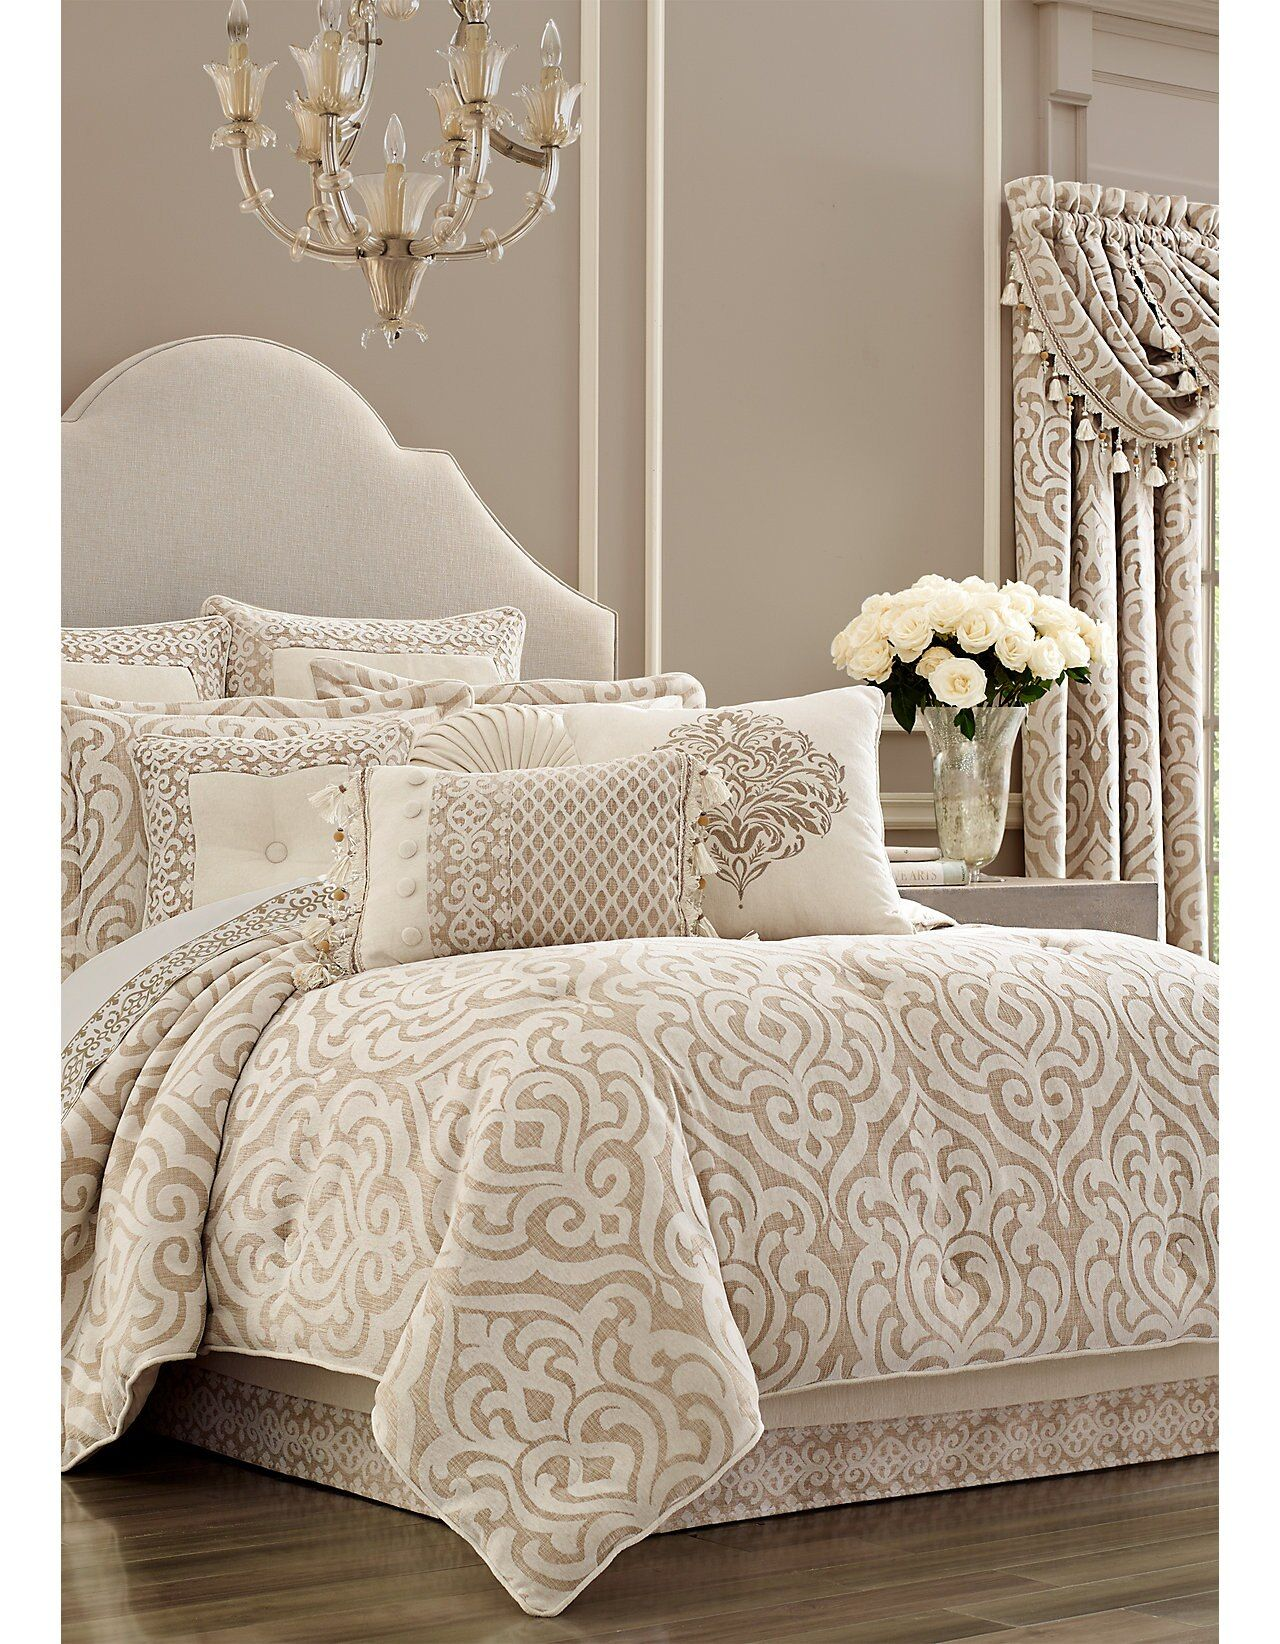 Milano Comforter Set Queen comforter sets, King